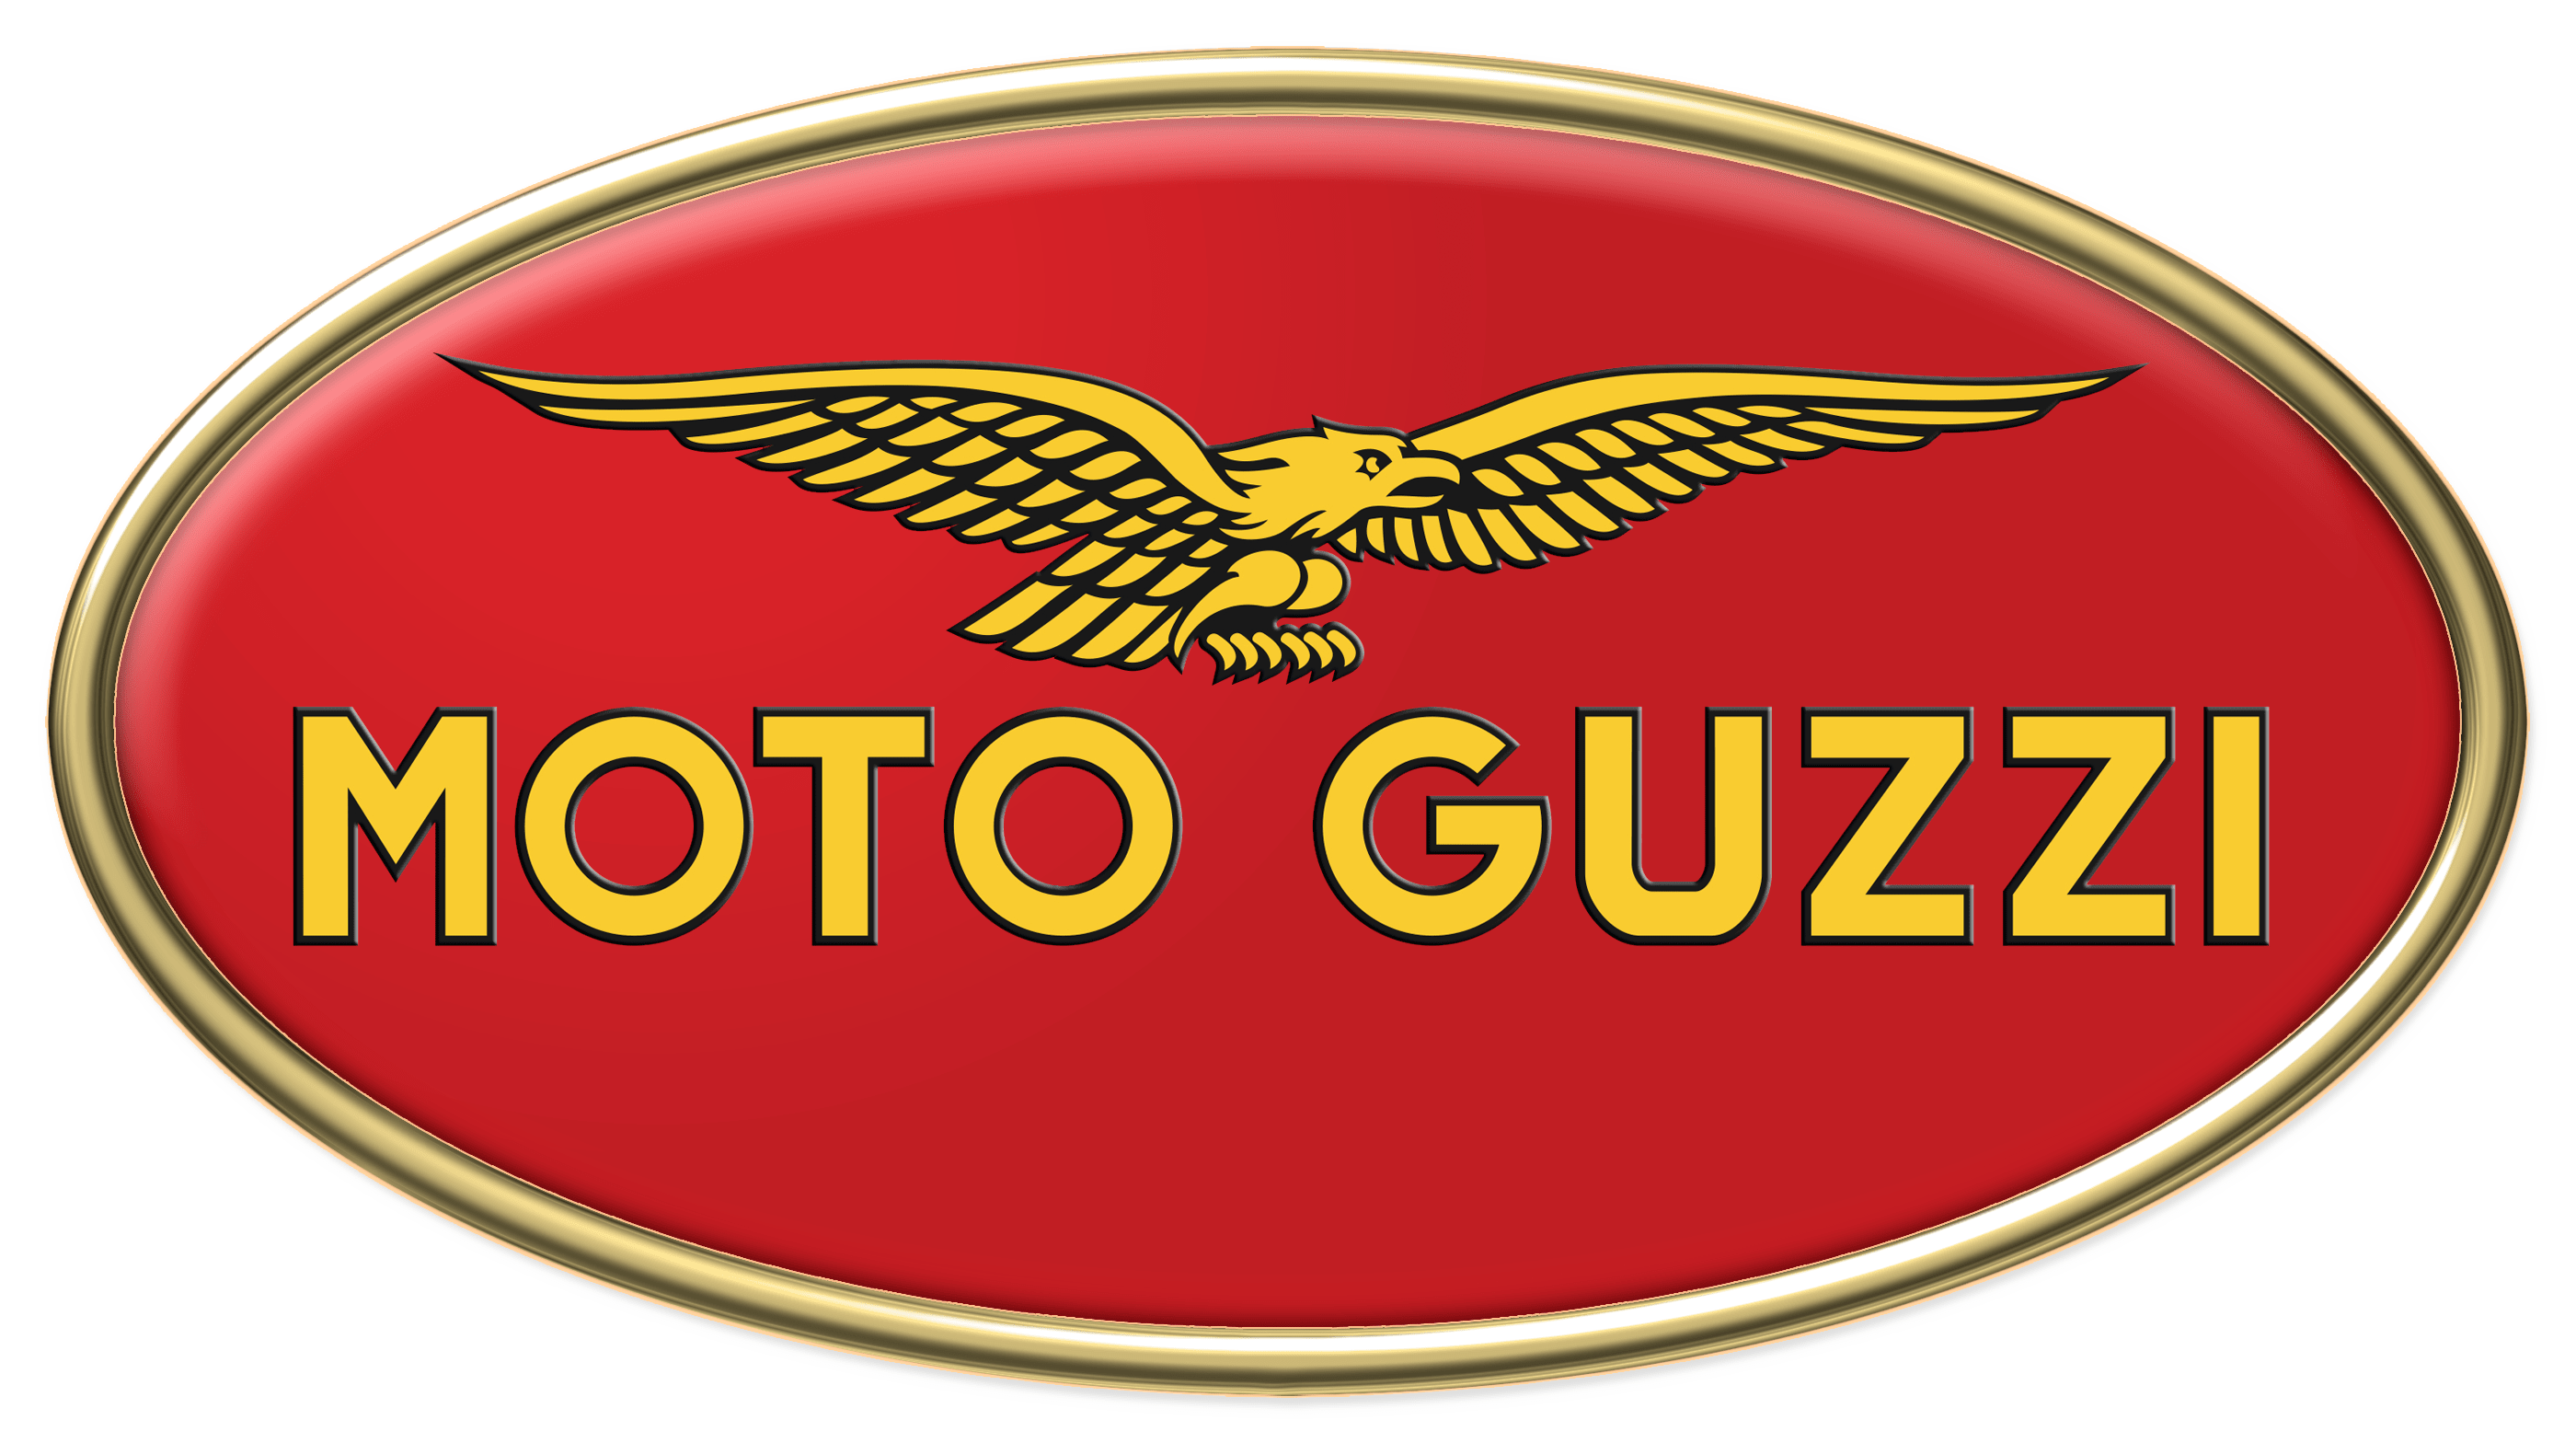 Motorcycle logos 2009 luke van deman - Filename Moto Guzzi Motorcycle Logo Png